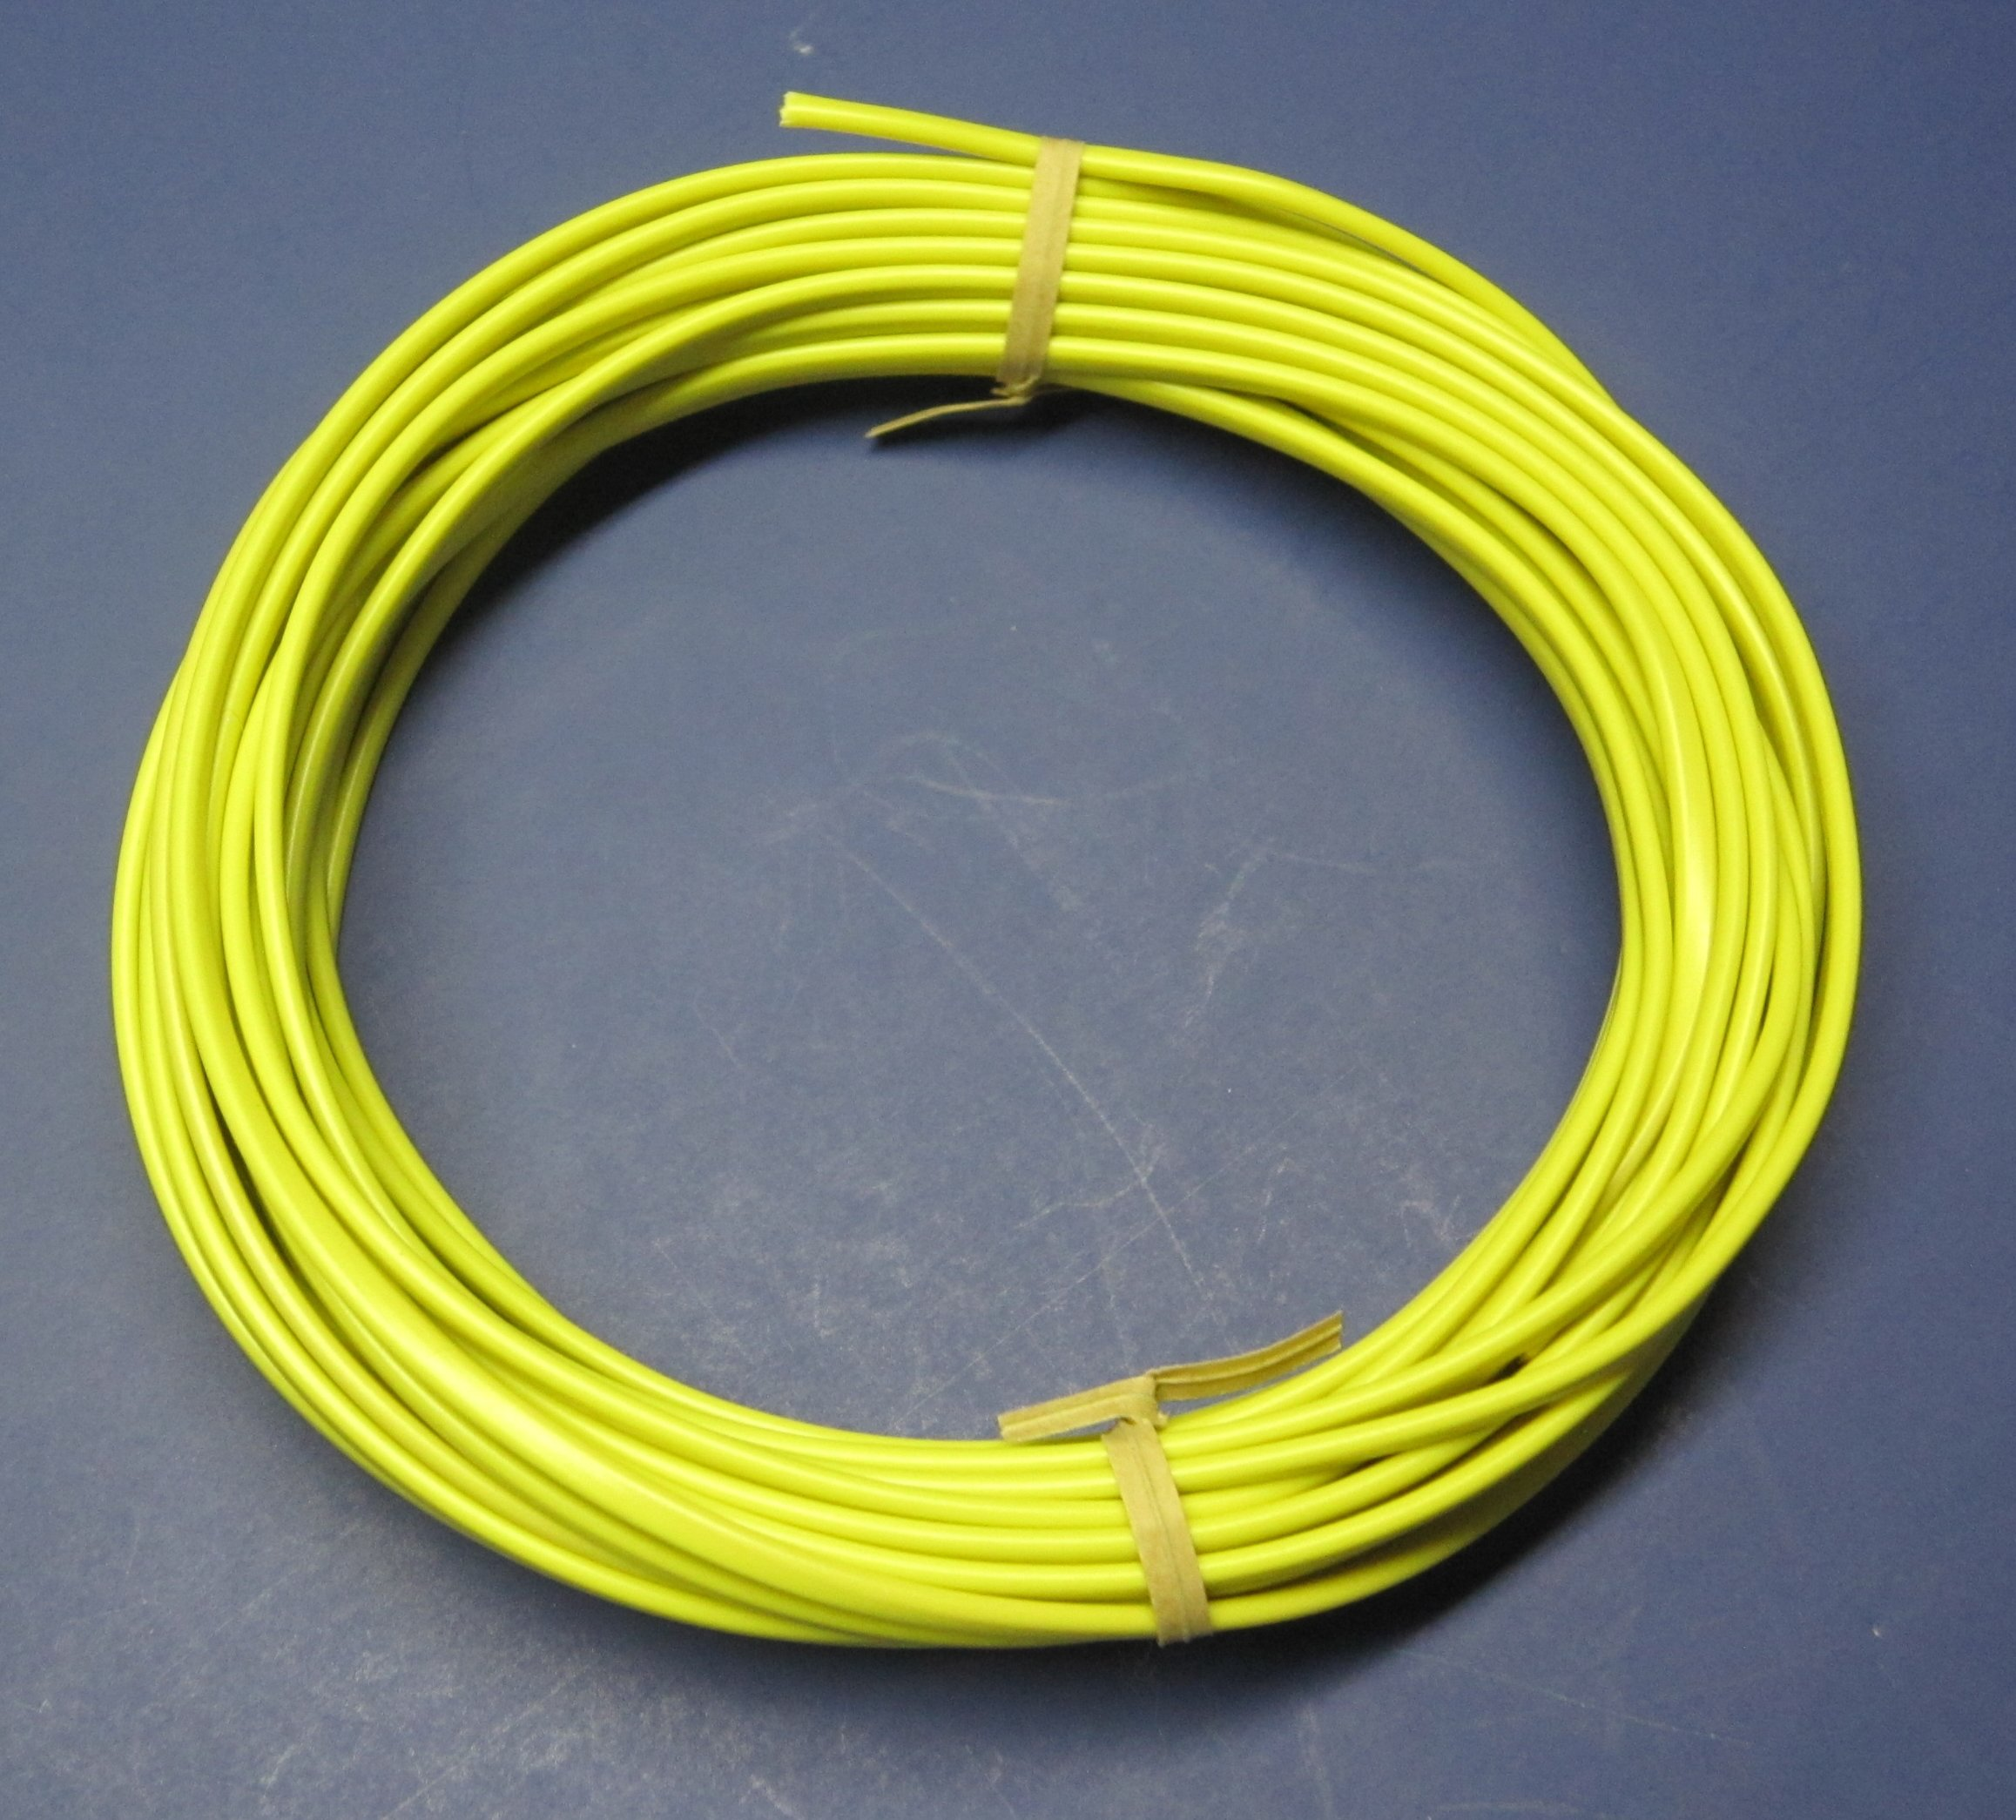 K-type Thermocouple Wire AWG 24 solid w. PVC insulation - 10 yard roll